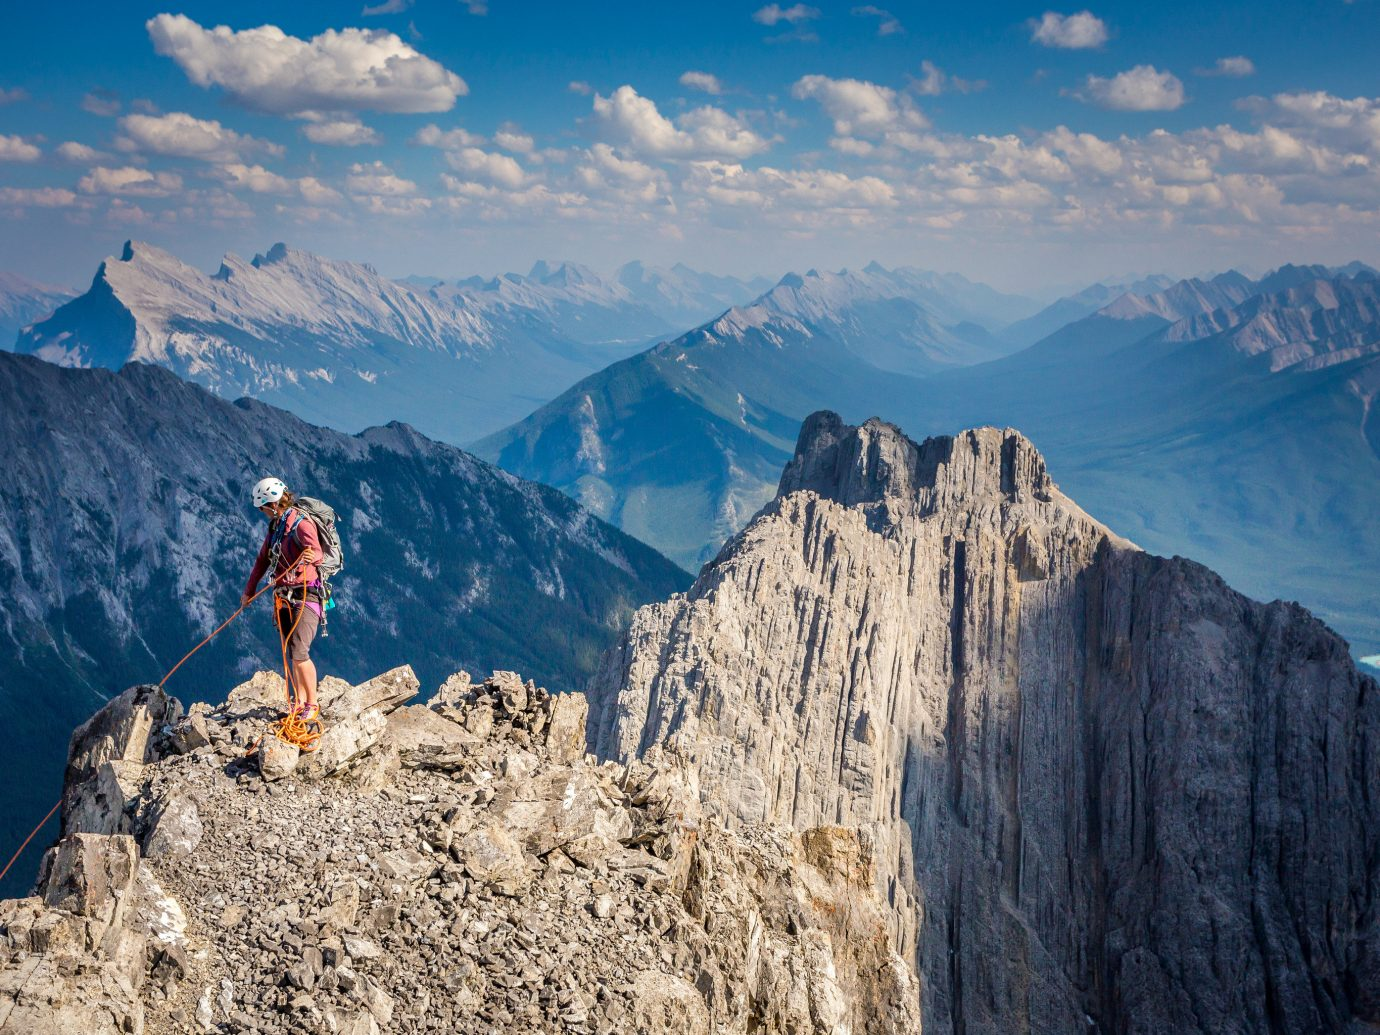 Travel Tips mountain outdoor sky Nature valley canyon mountainous landforms snow mountain range landform geographical feature wilderness standing ridge alps Adventure outdoor recreation mountaineering extreme sport sports walking hill recreation summit plateau hillside